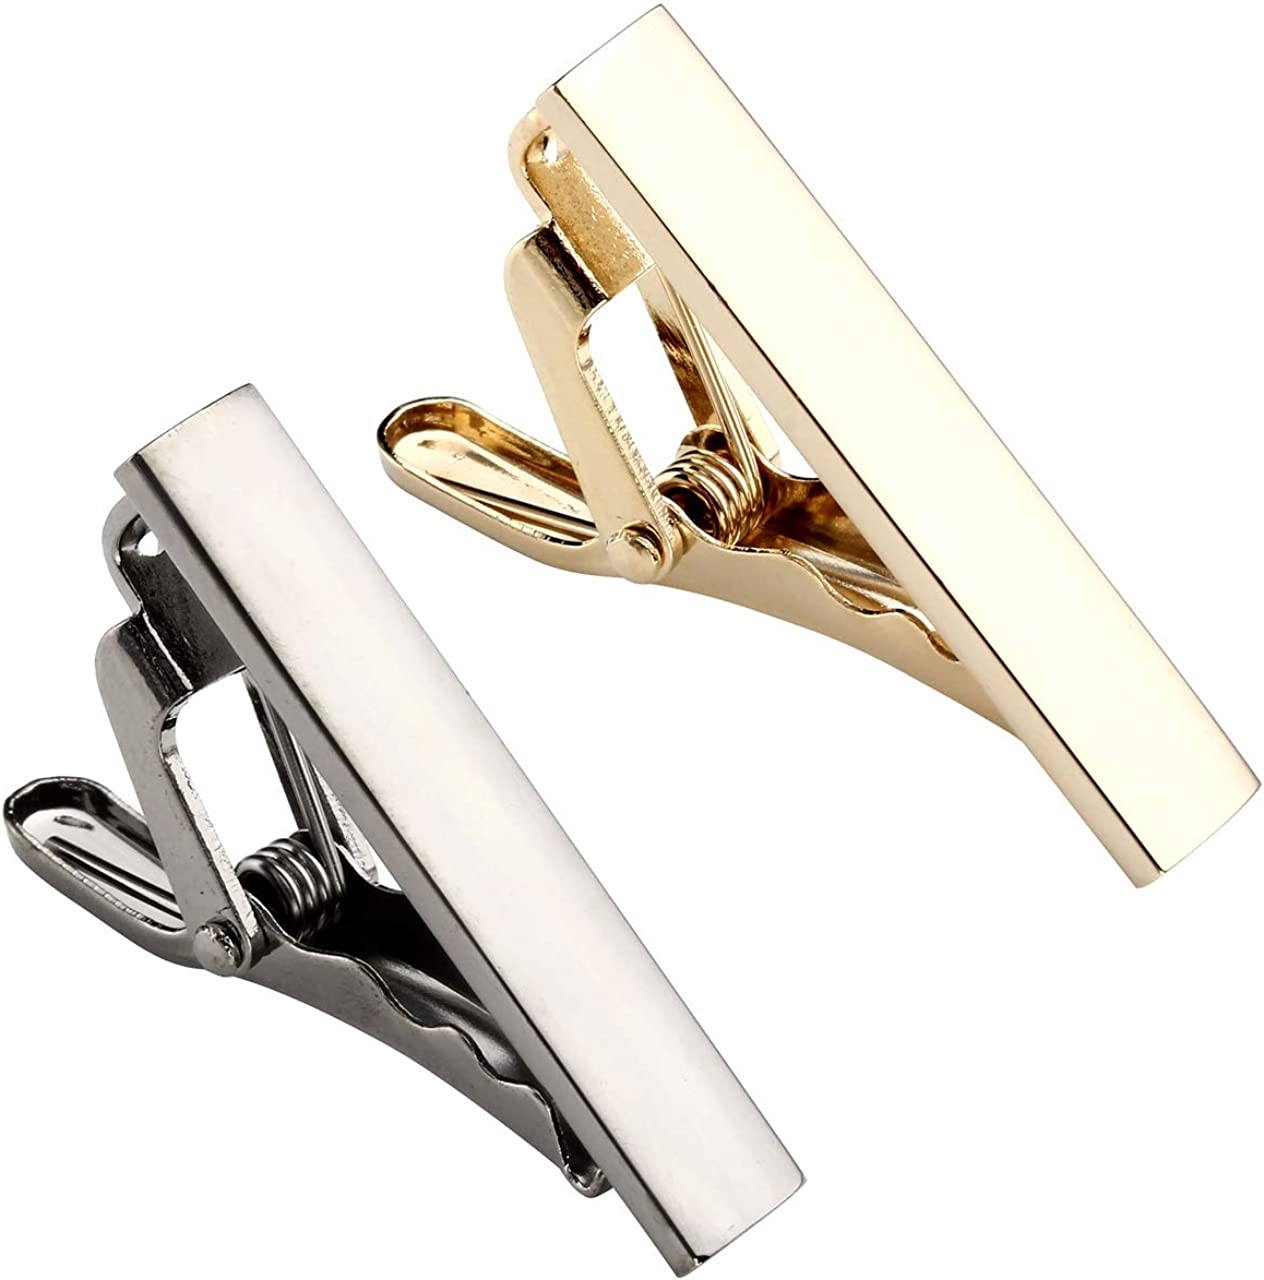 2.3Inches Zysta 2pcs Set Stainless Steel Exquisite GQ Classic Tie Bar Clip,Gold Tone